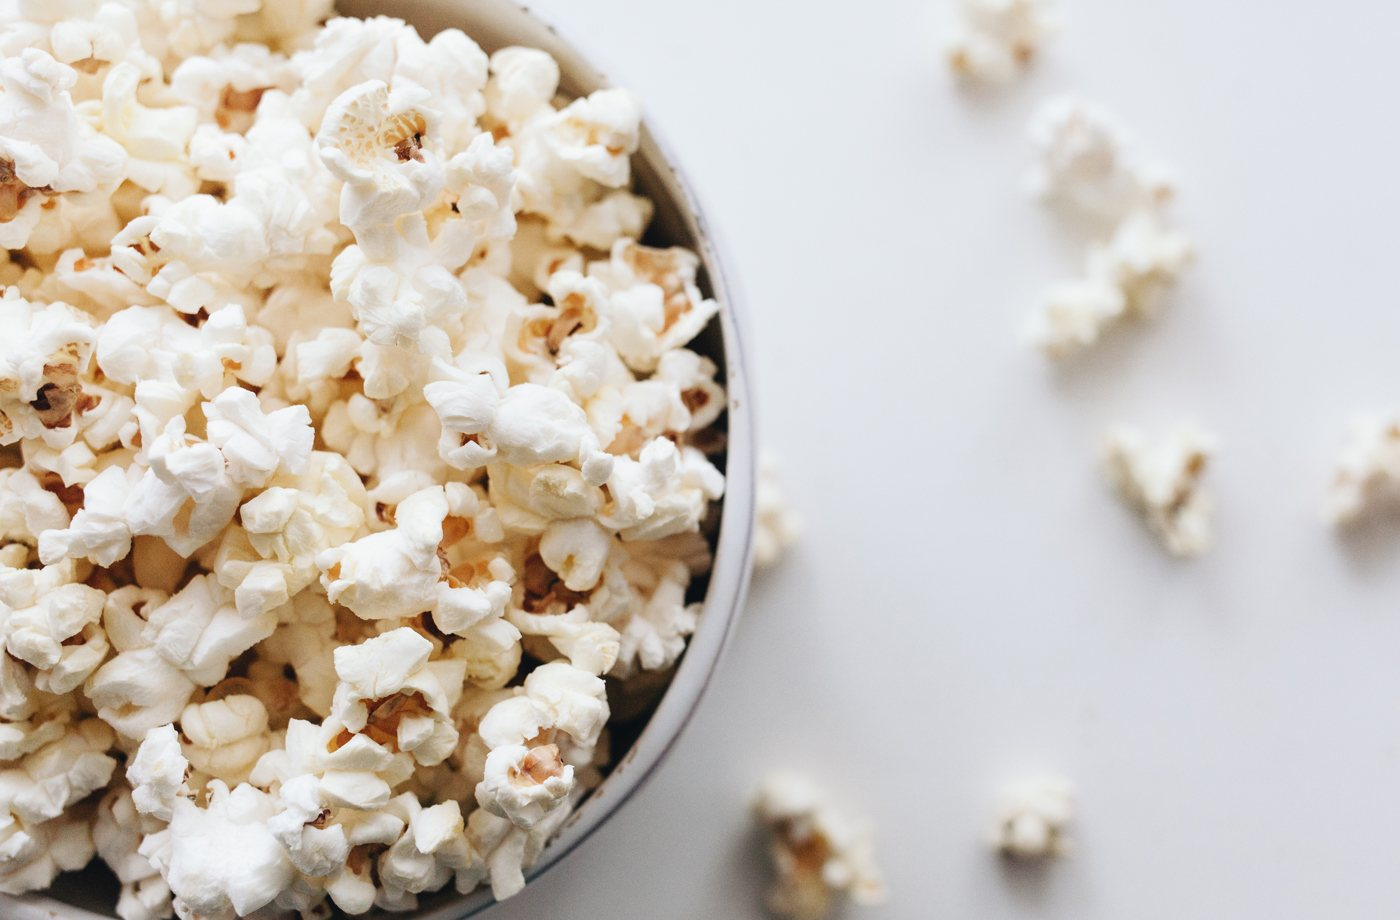 I tried Trader Joe's popcorn from the corncob | Well+Good